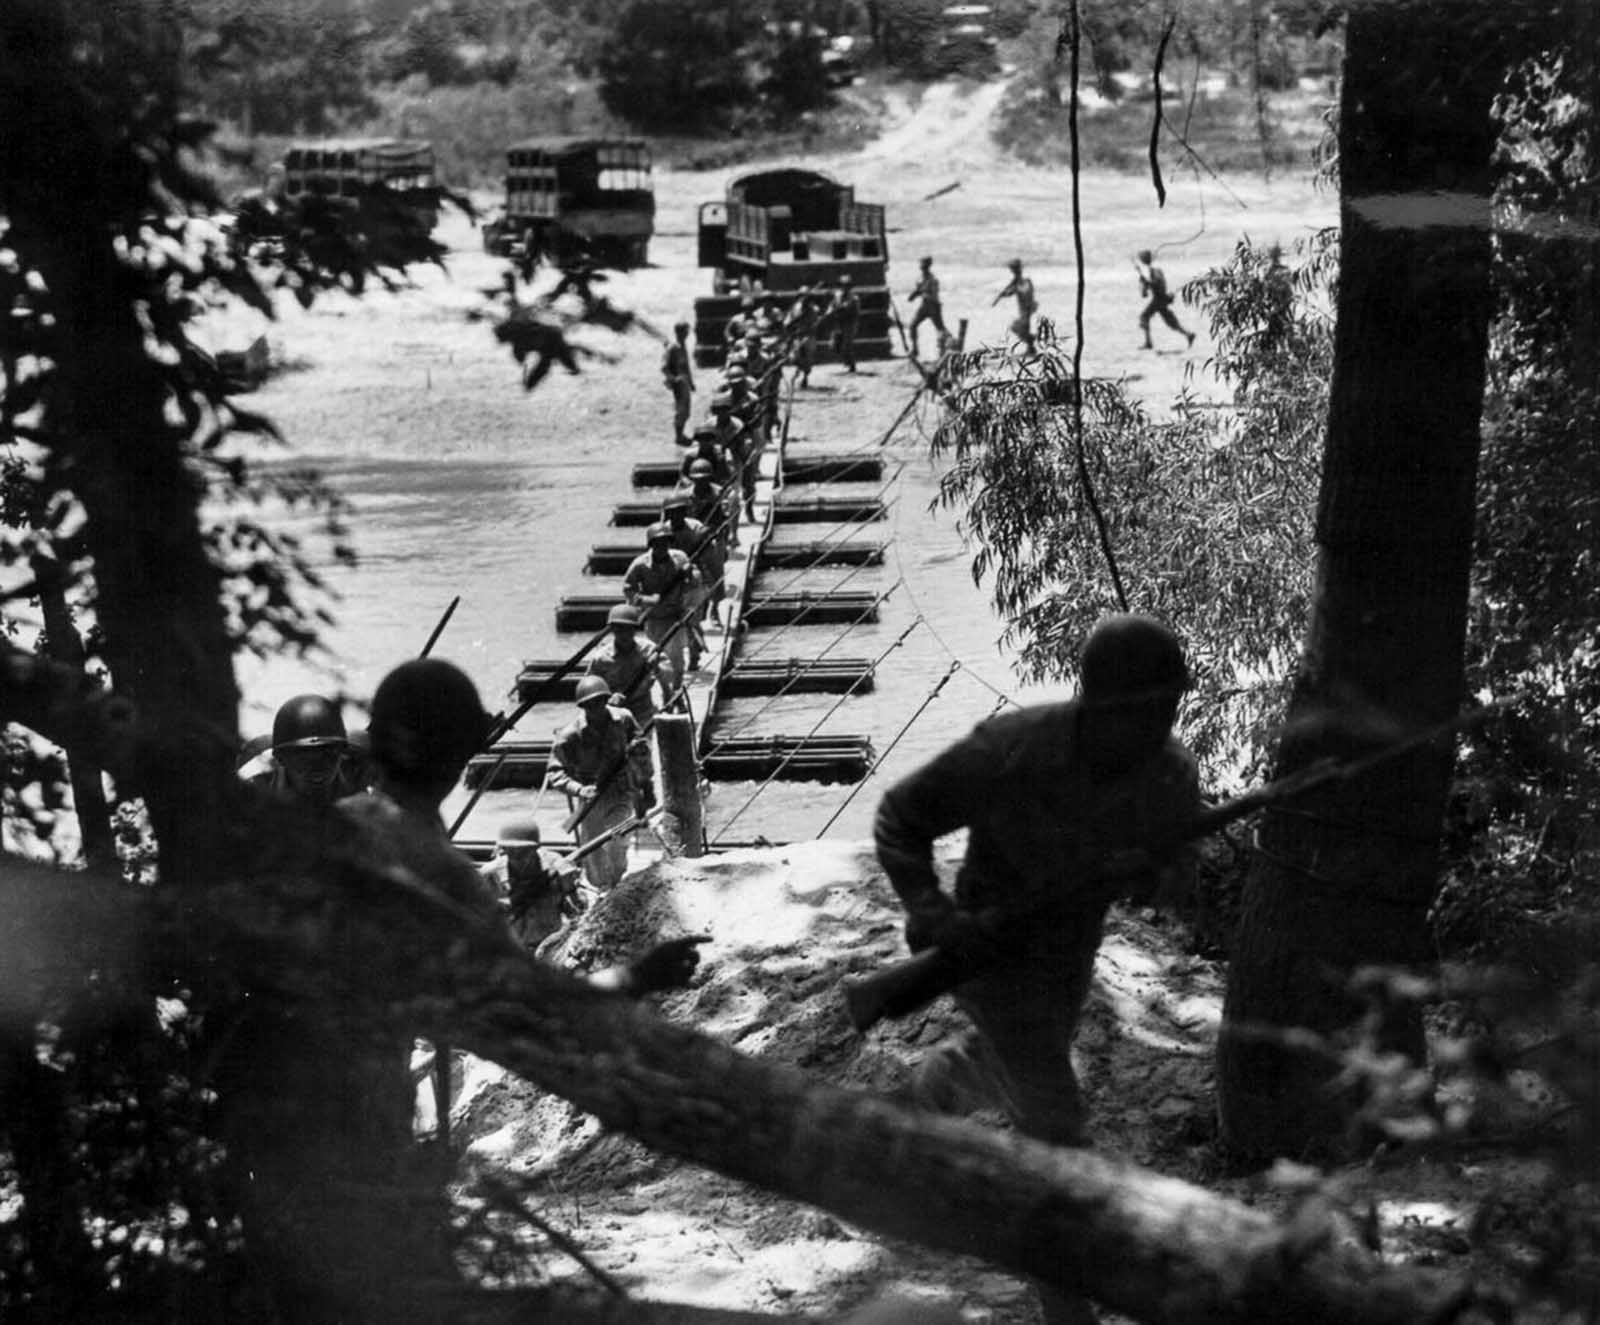 Soldiers of the 442nd train in building and attacking across a pontoon bridge. July, 1943.